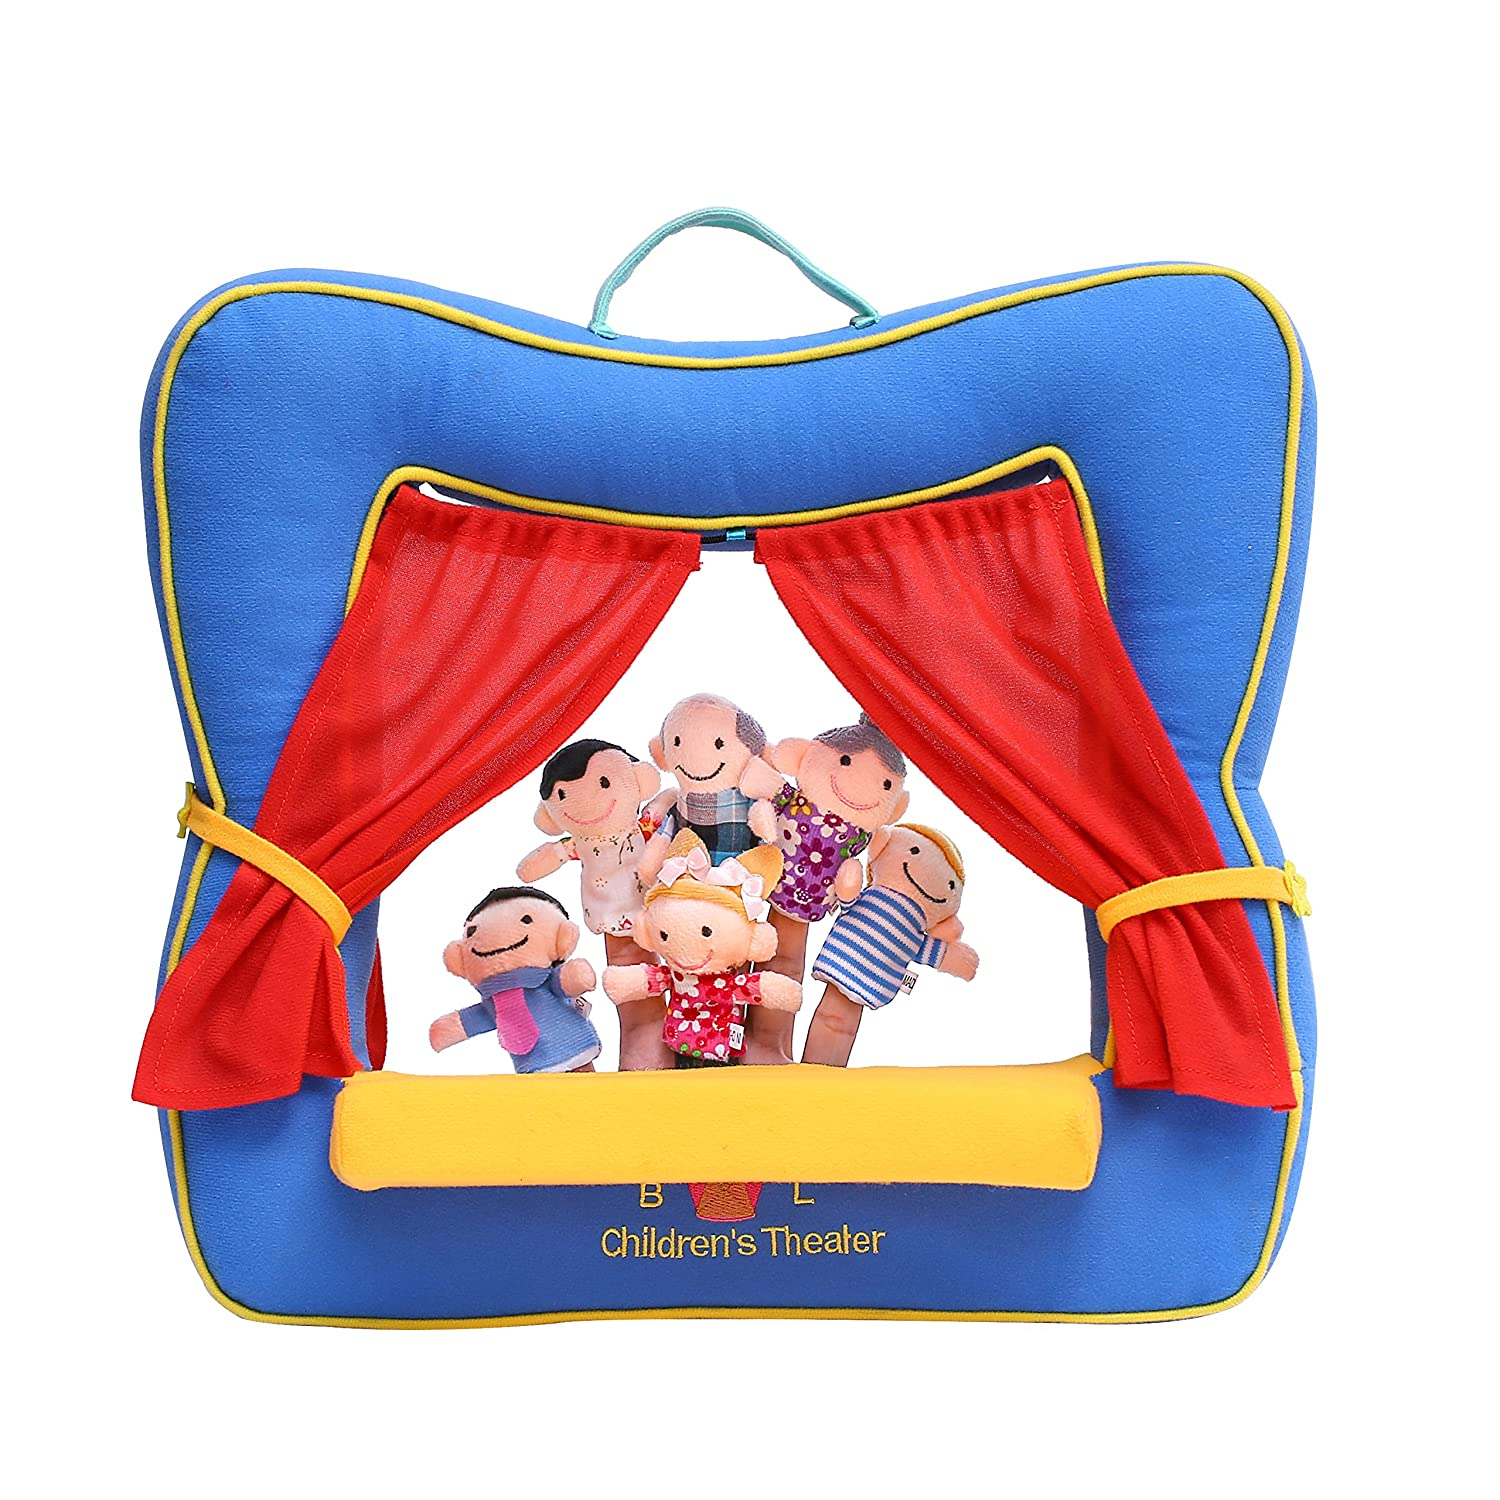 Finger Puppet Theater Stage by Better Line - Set Includes 6 Finger Family Puppets - Portable Plush Finger Puppet Theater is the Best Preschool Kids Toy (Blue Color)